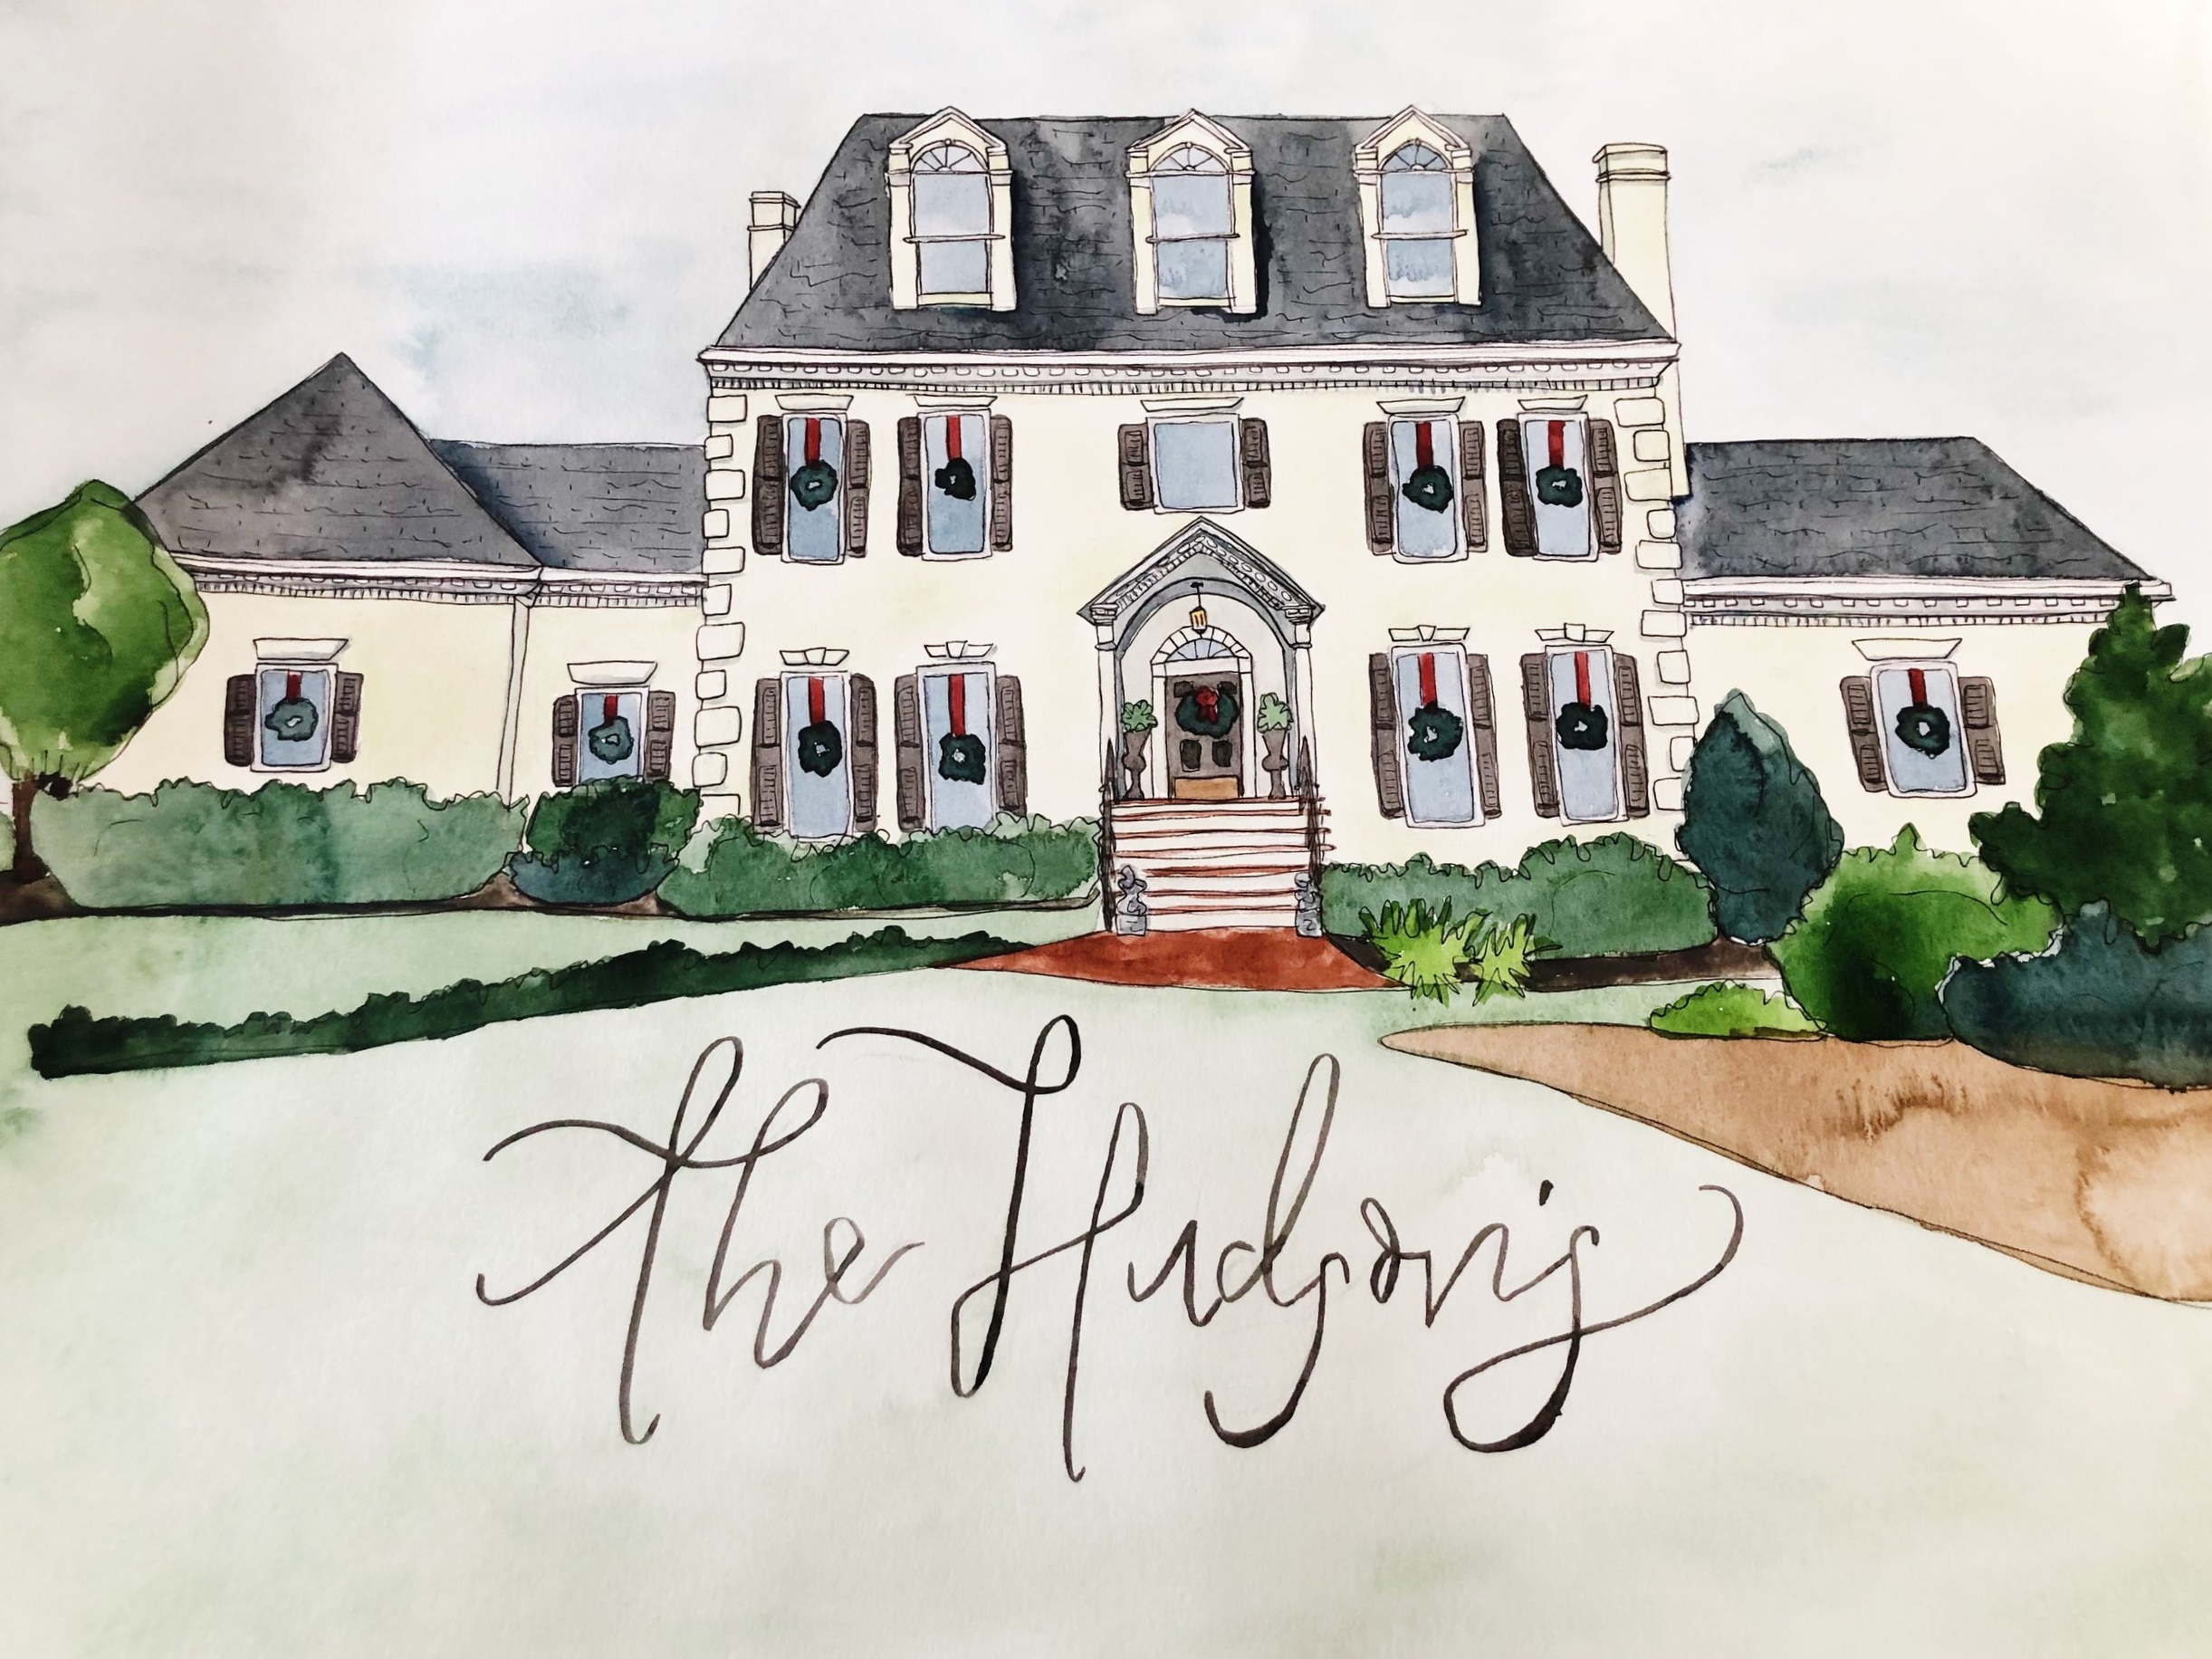 My custom house portraits make the best closing gifts, I would LOVE to partner with you! If you're interested, please contact me at hello@ruthiekellar.com for more information!